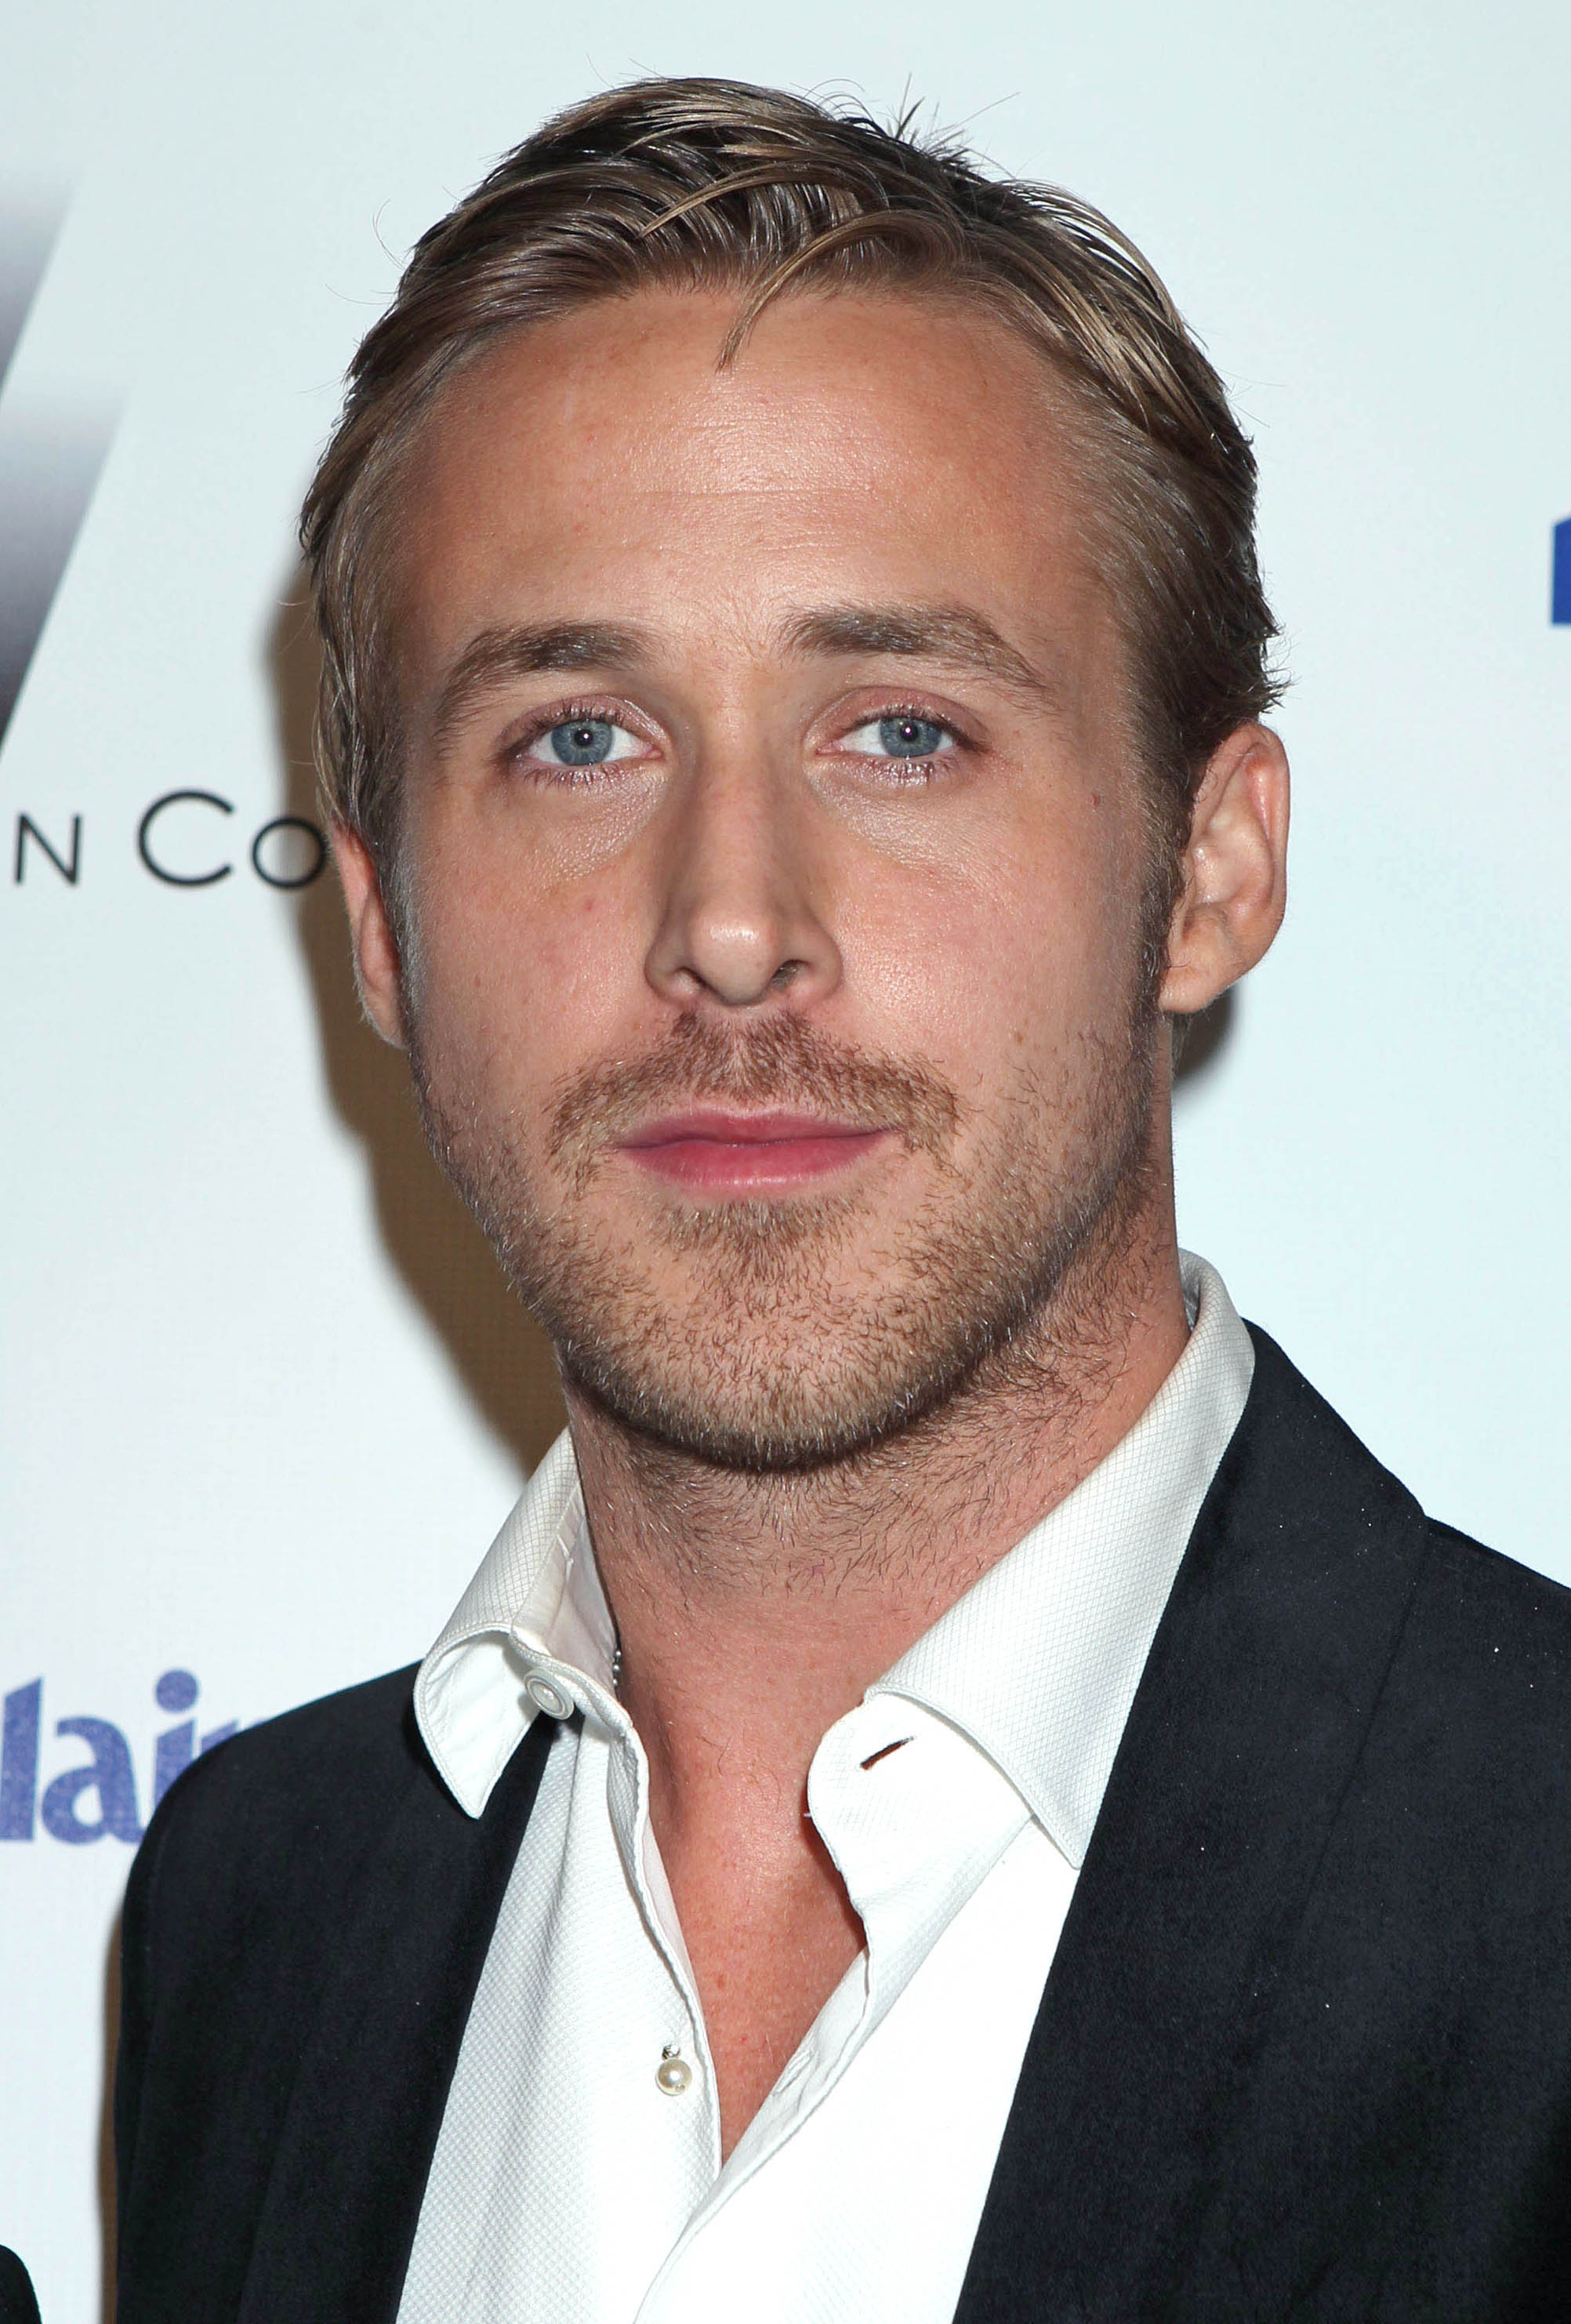 Ryan Gosling to make debut as director - NME Ryan Gosling